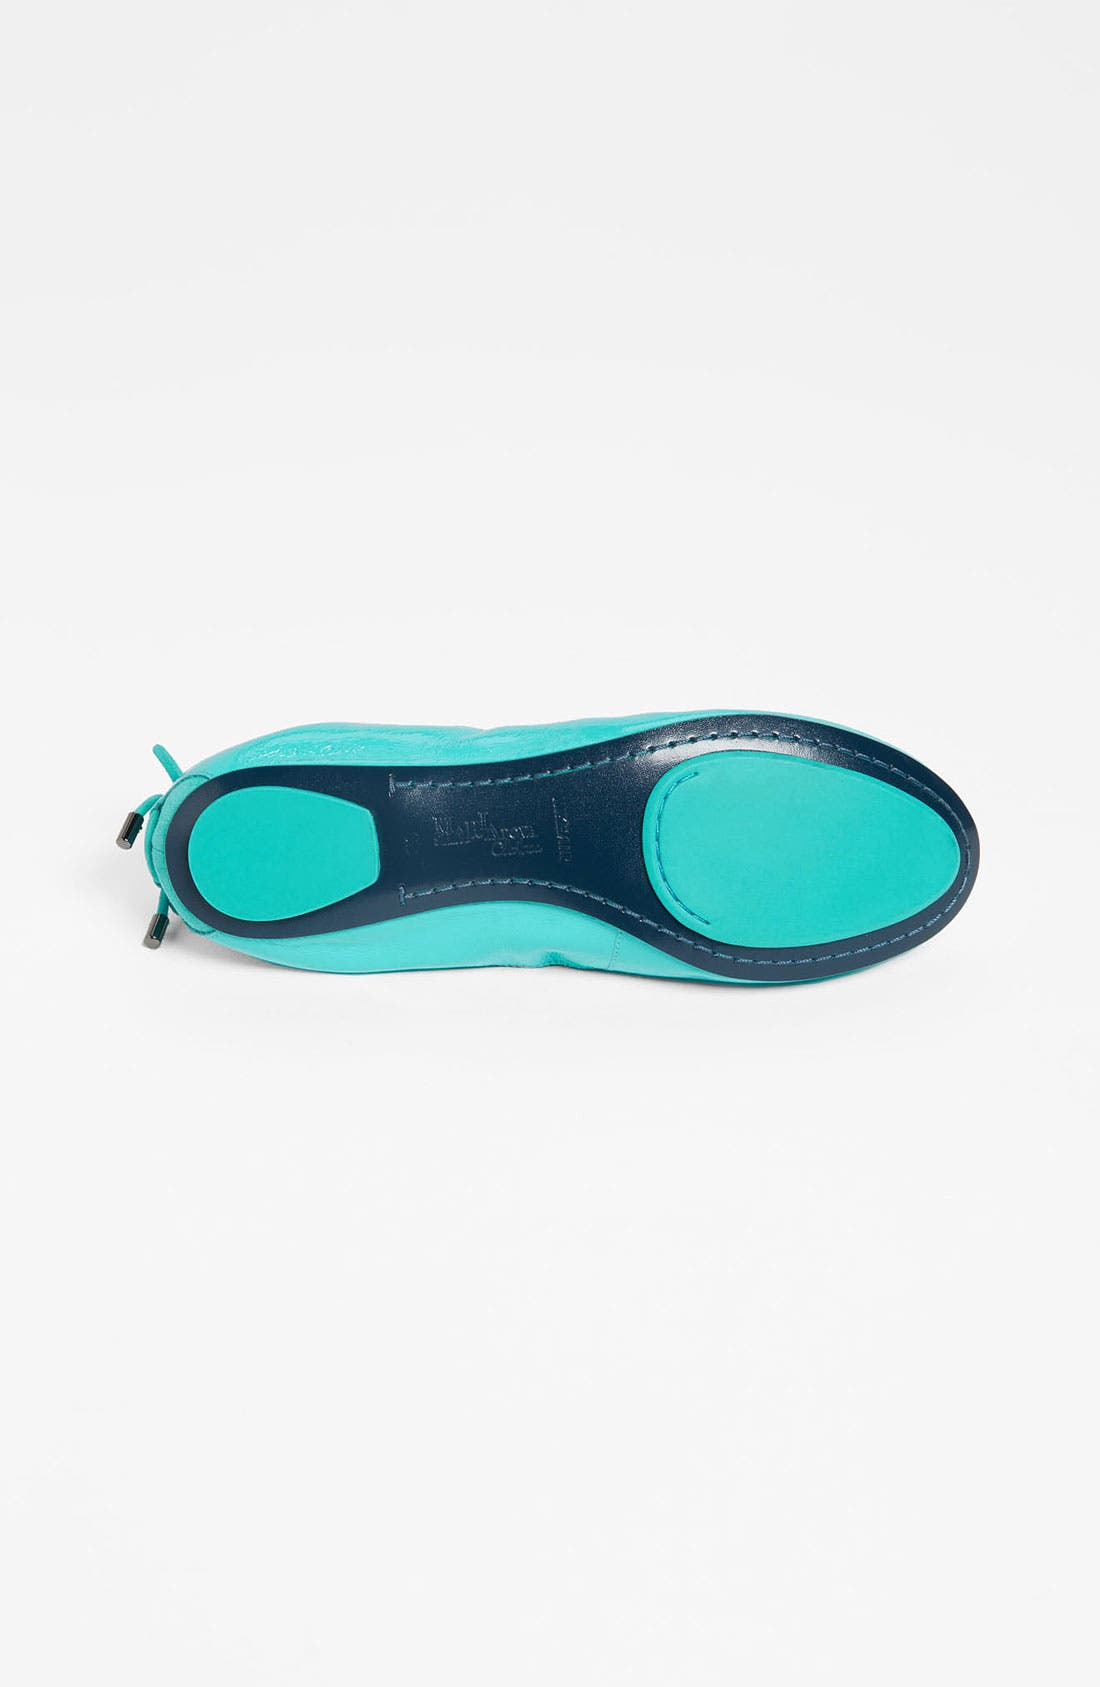 ,                             Maria Sharapova by Cole Haan 'Air Bacara' Flat,                             Alternate thumbnail 72, color,                             402